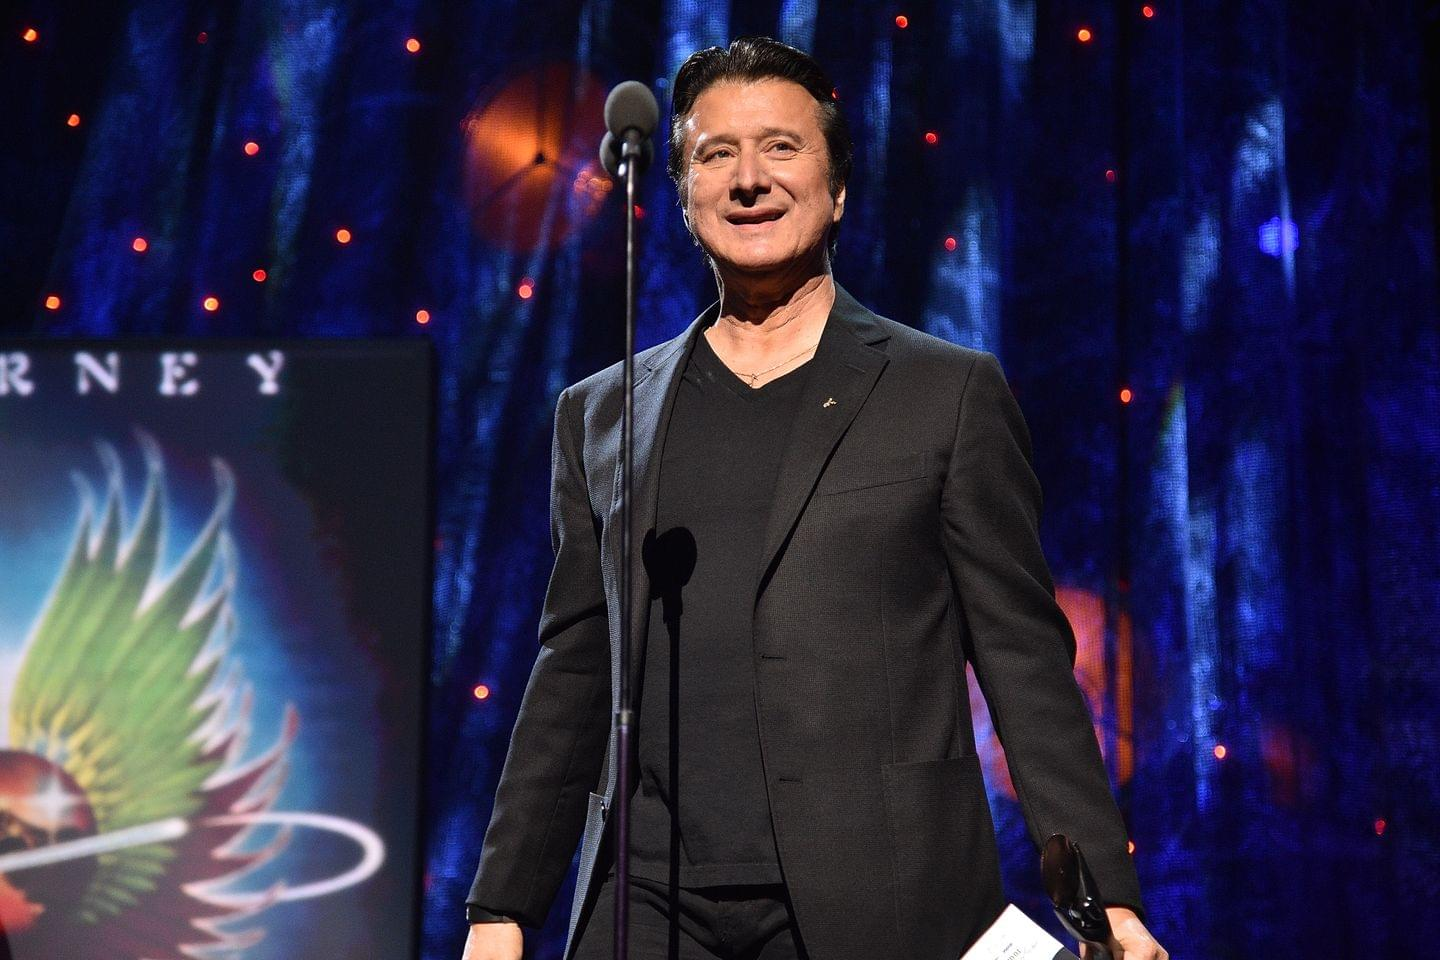 Hear Steve Perry's First New Song In Nearly 25 Years